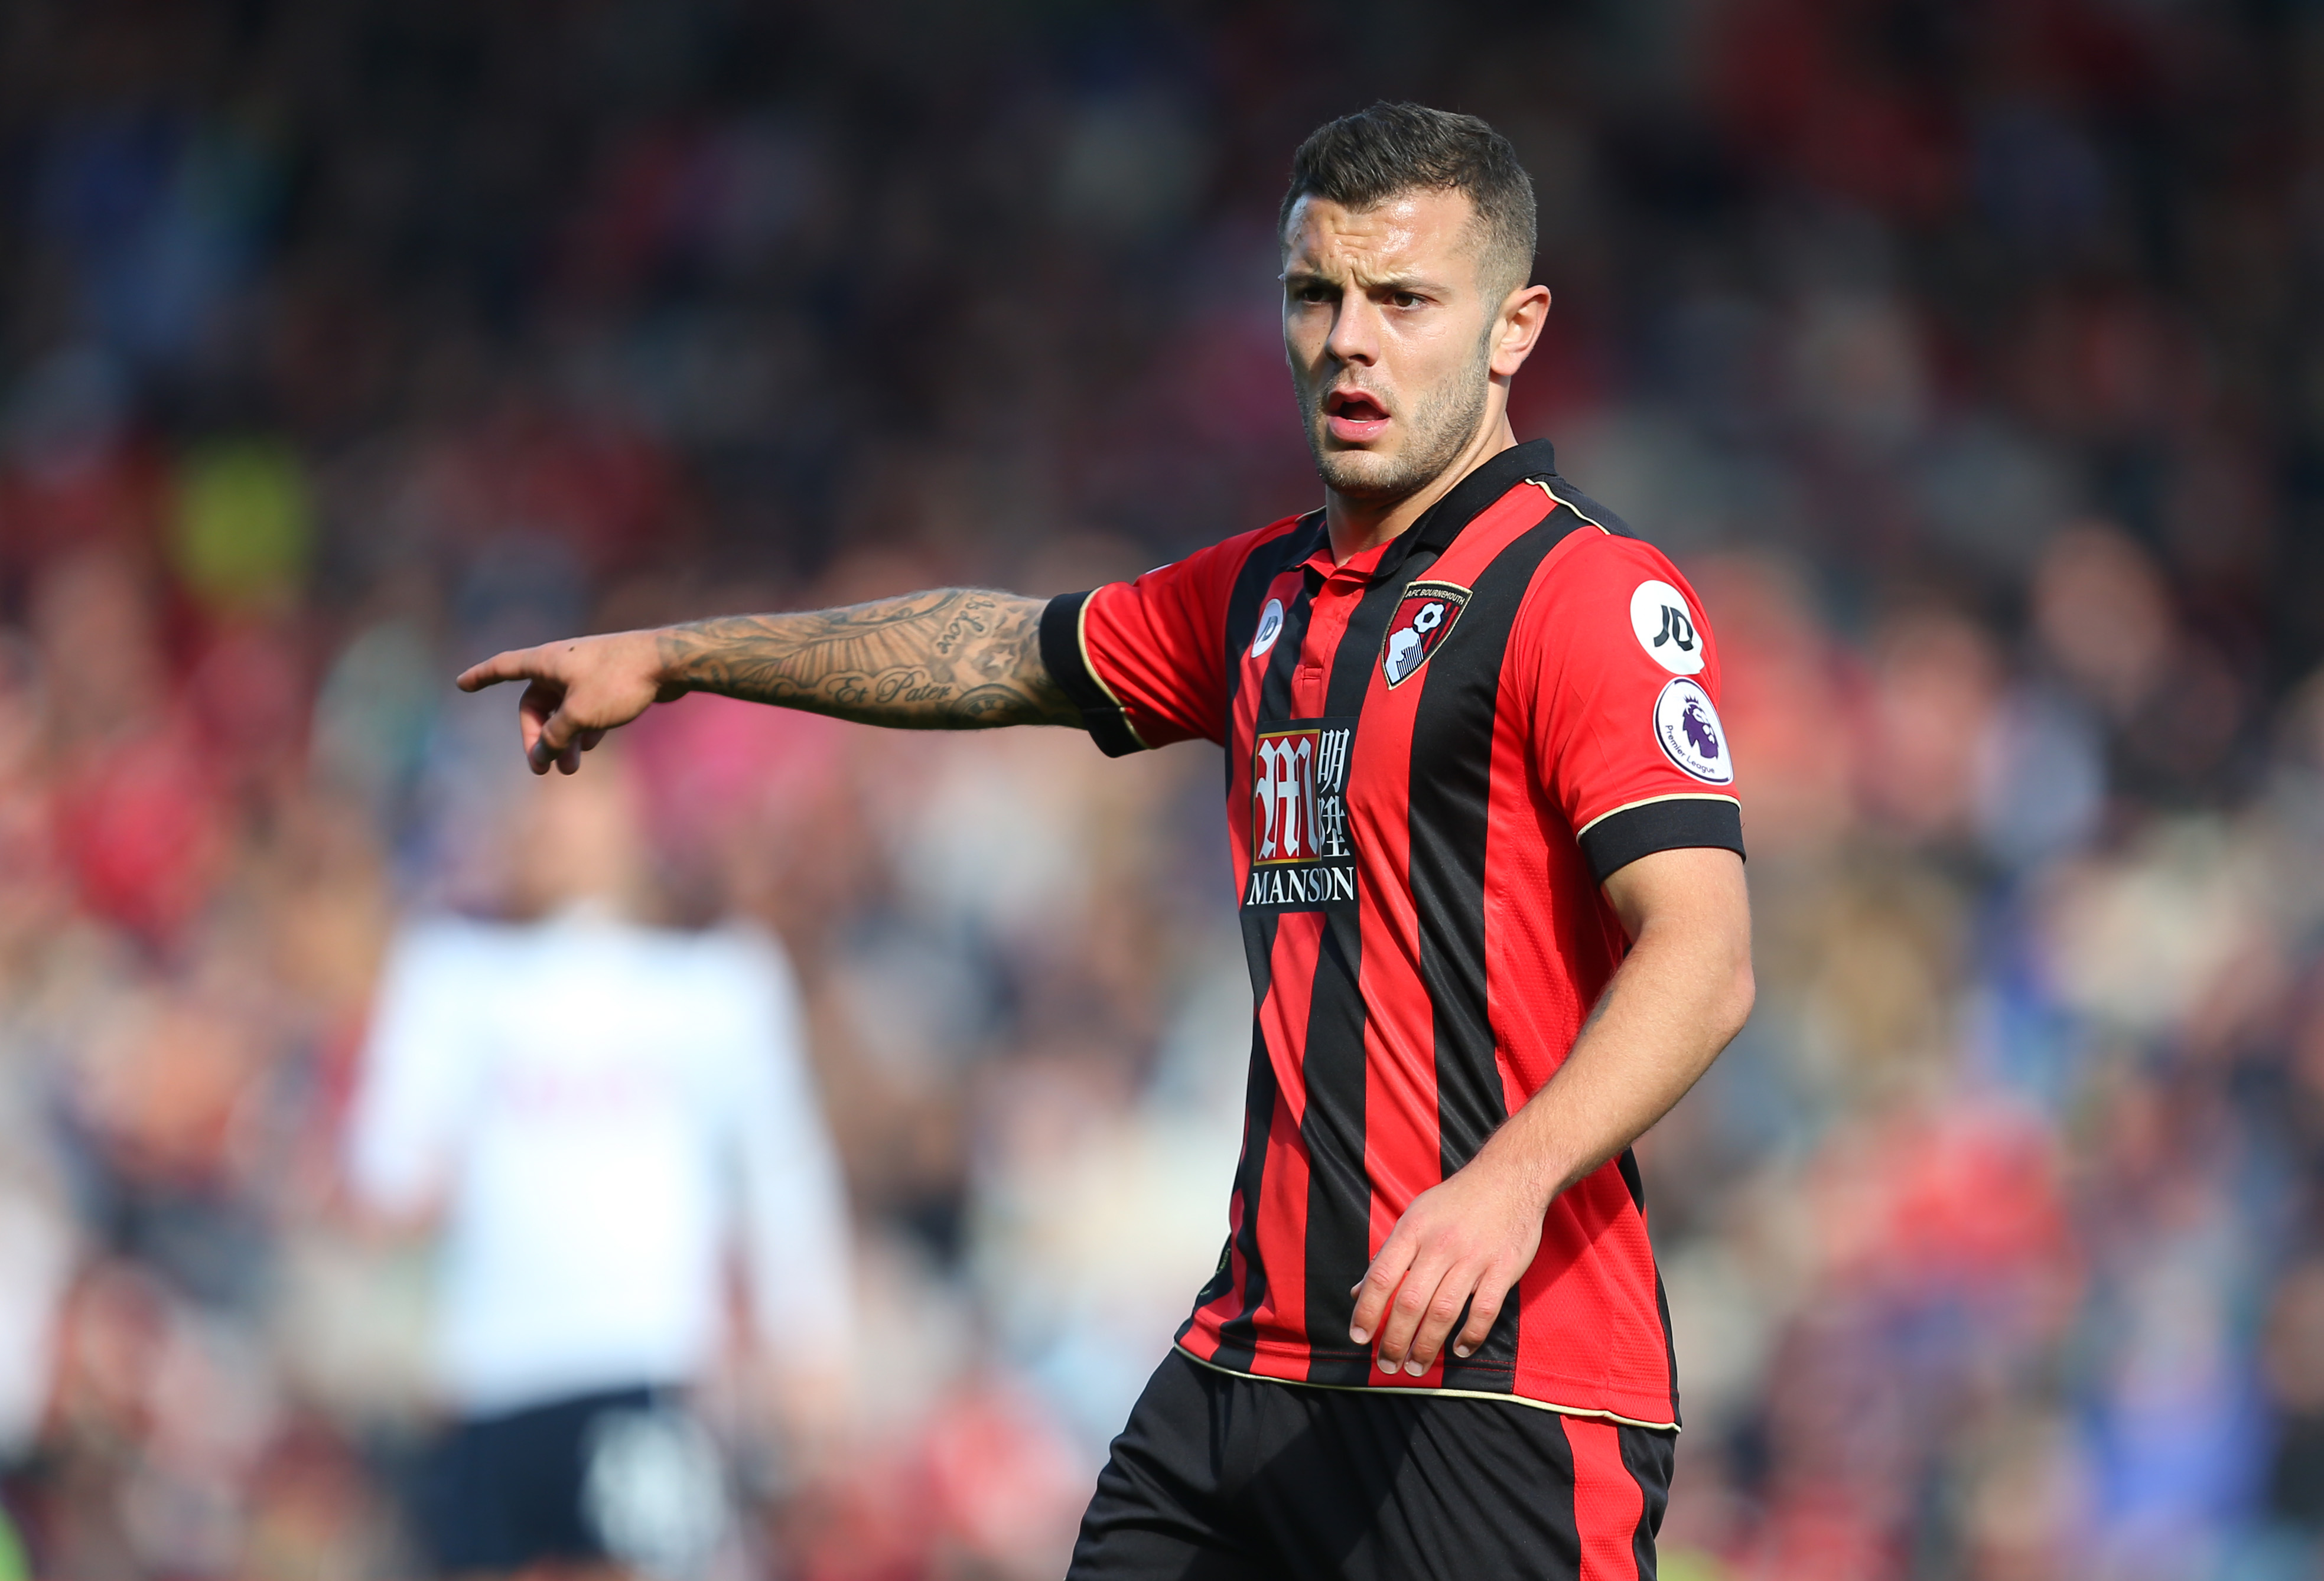 BOURNEMOUTH, ENGLAND - OCTOBER 22: Jack Wilshere of Bournemouth points during the Premier League match between AFC Bournemouth and Tottenham Hotspur at Vitality Stadium on October 22, 2016 in Bournemouth, England. (Photo by Catherine Ivill - AMA/Getty Images)